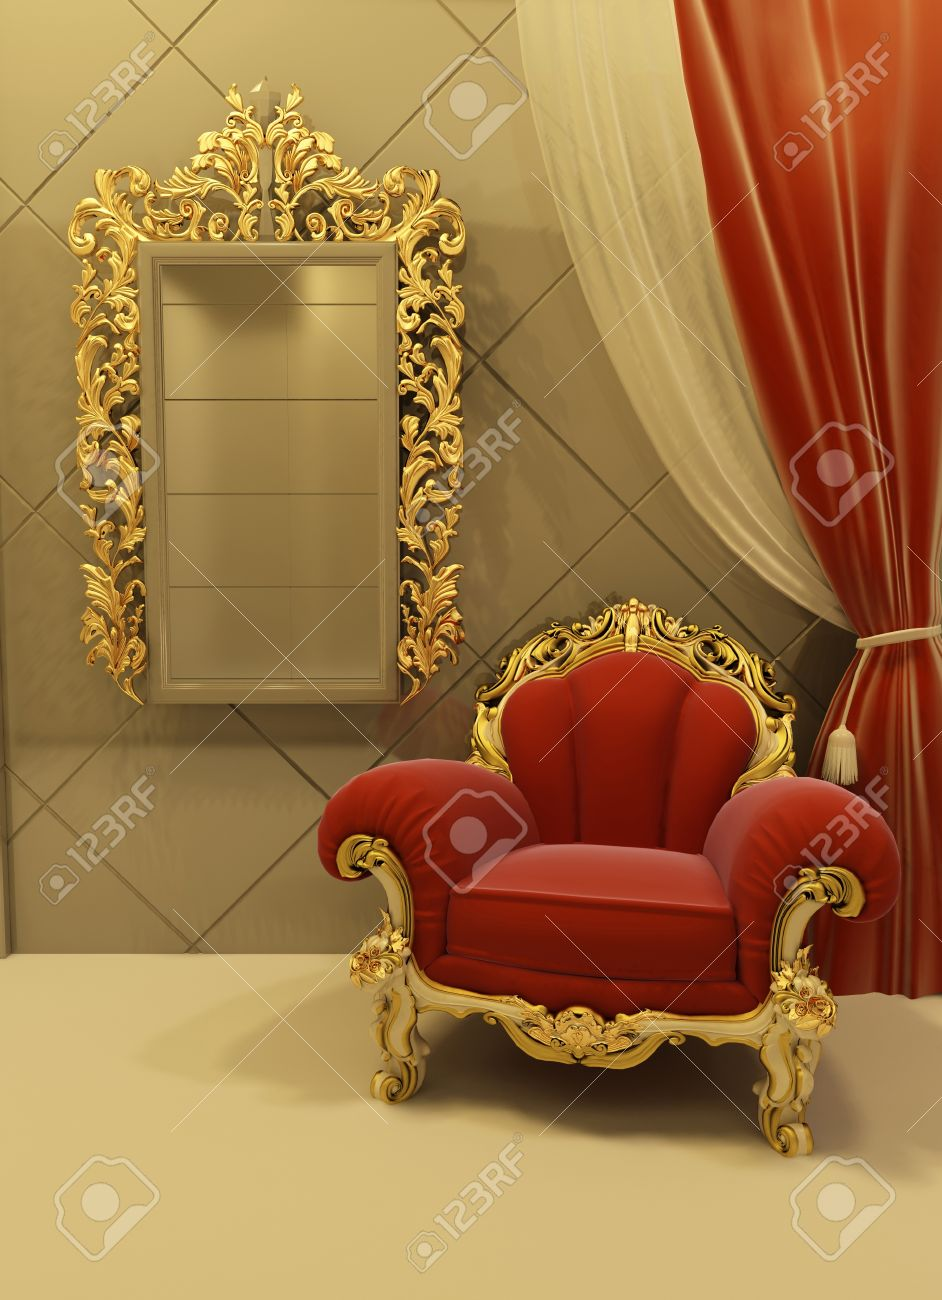 3d Royal Furniture In A Luxurious Interior Stock Photo   10031991